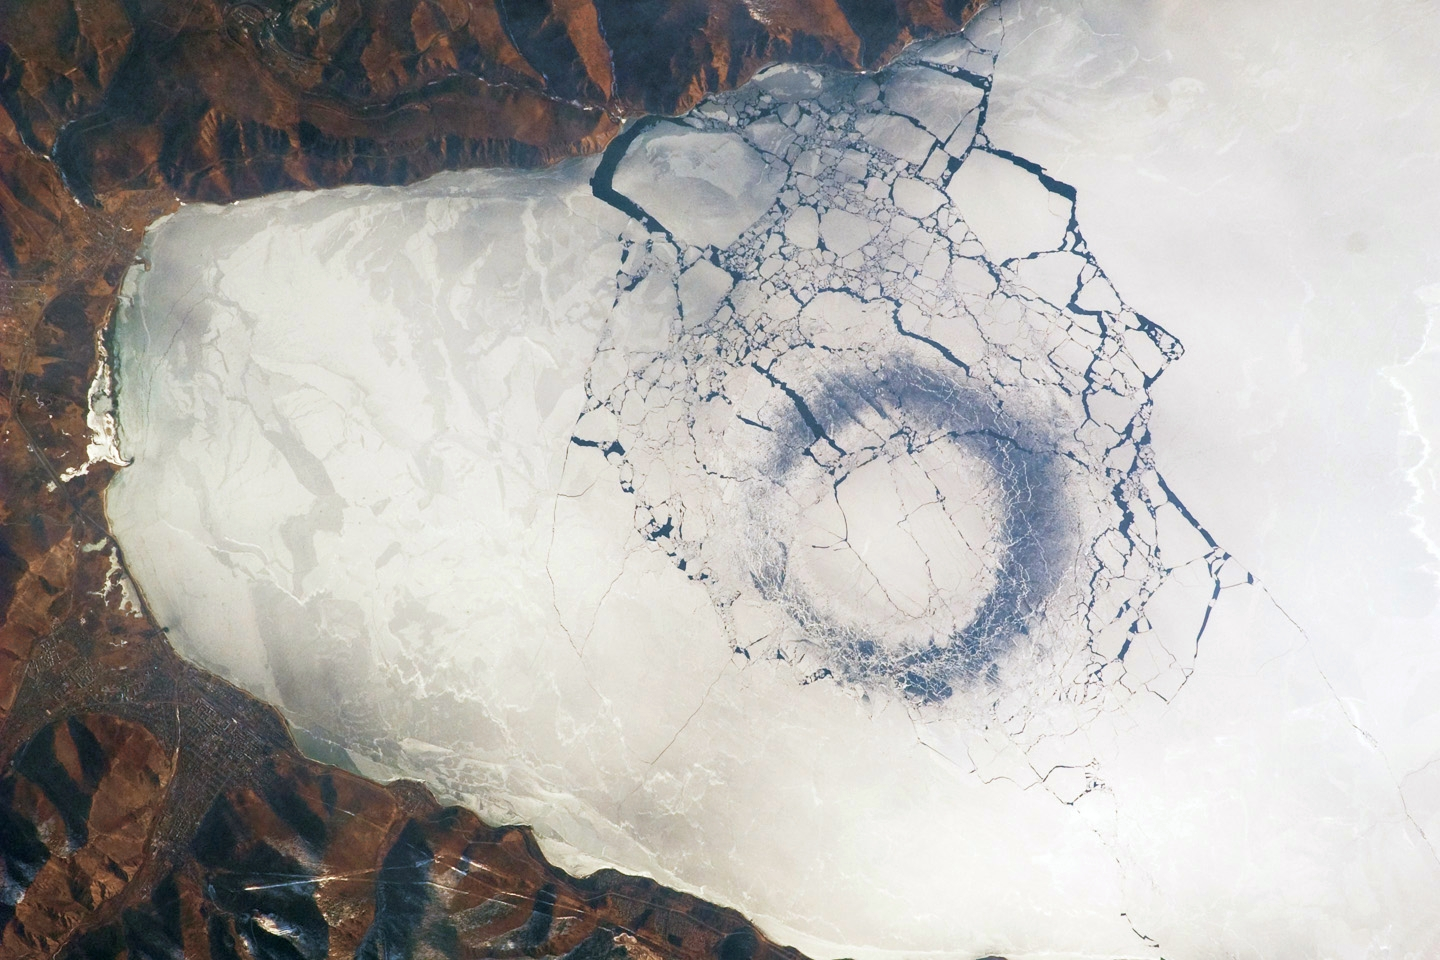 Lake Baikal - Circle of thin ice - 4km